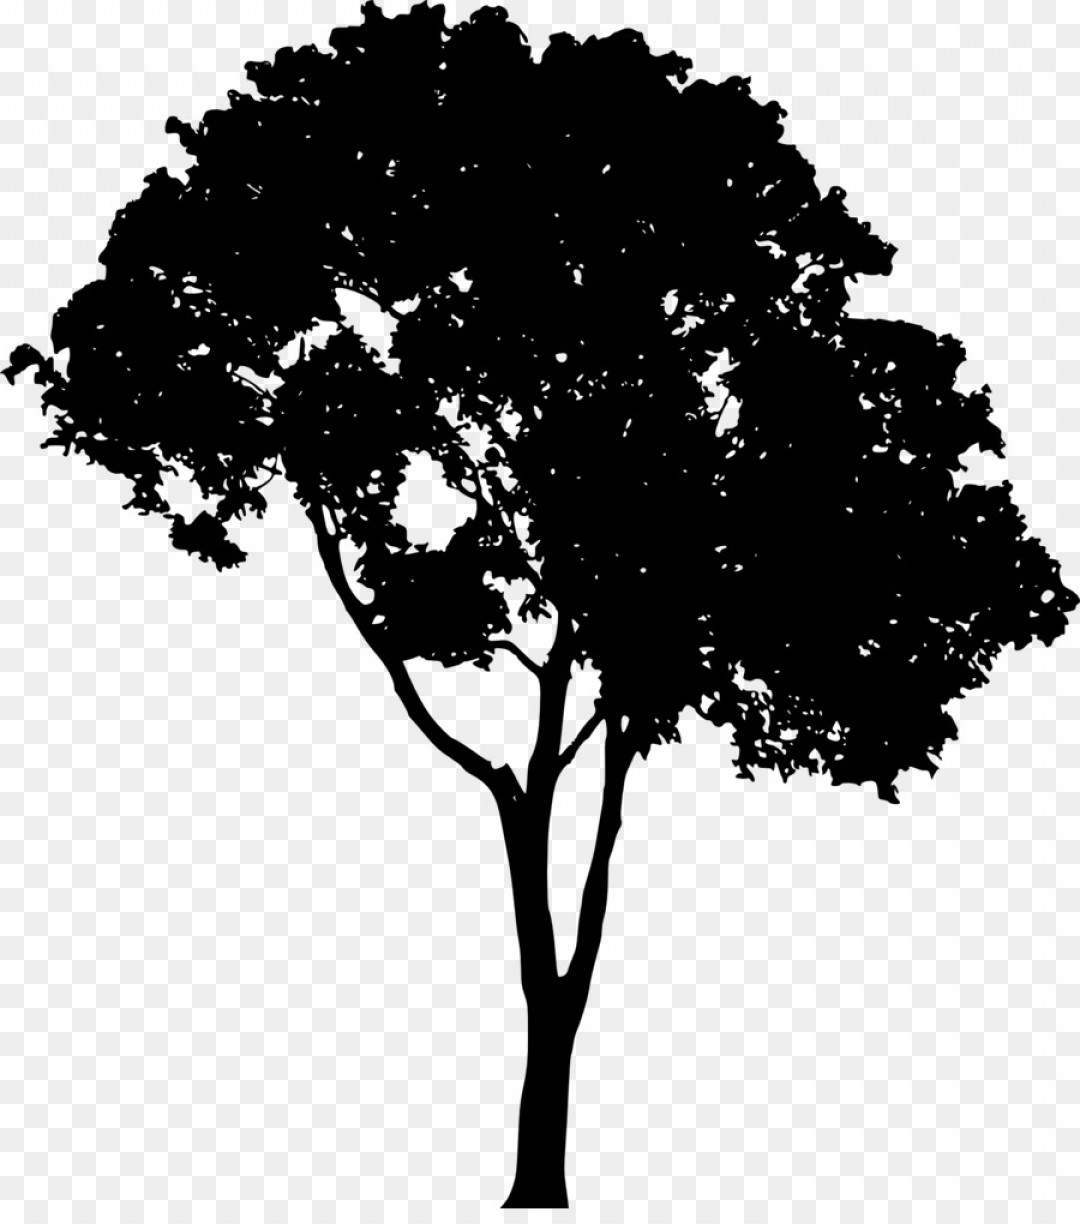 Png Tree Silhouette Clip Art Tree Vector.